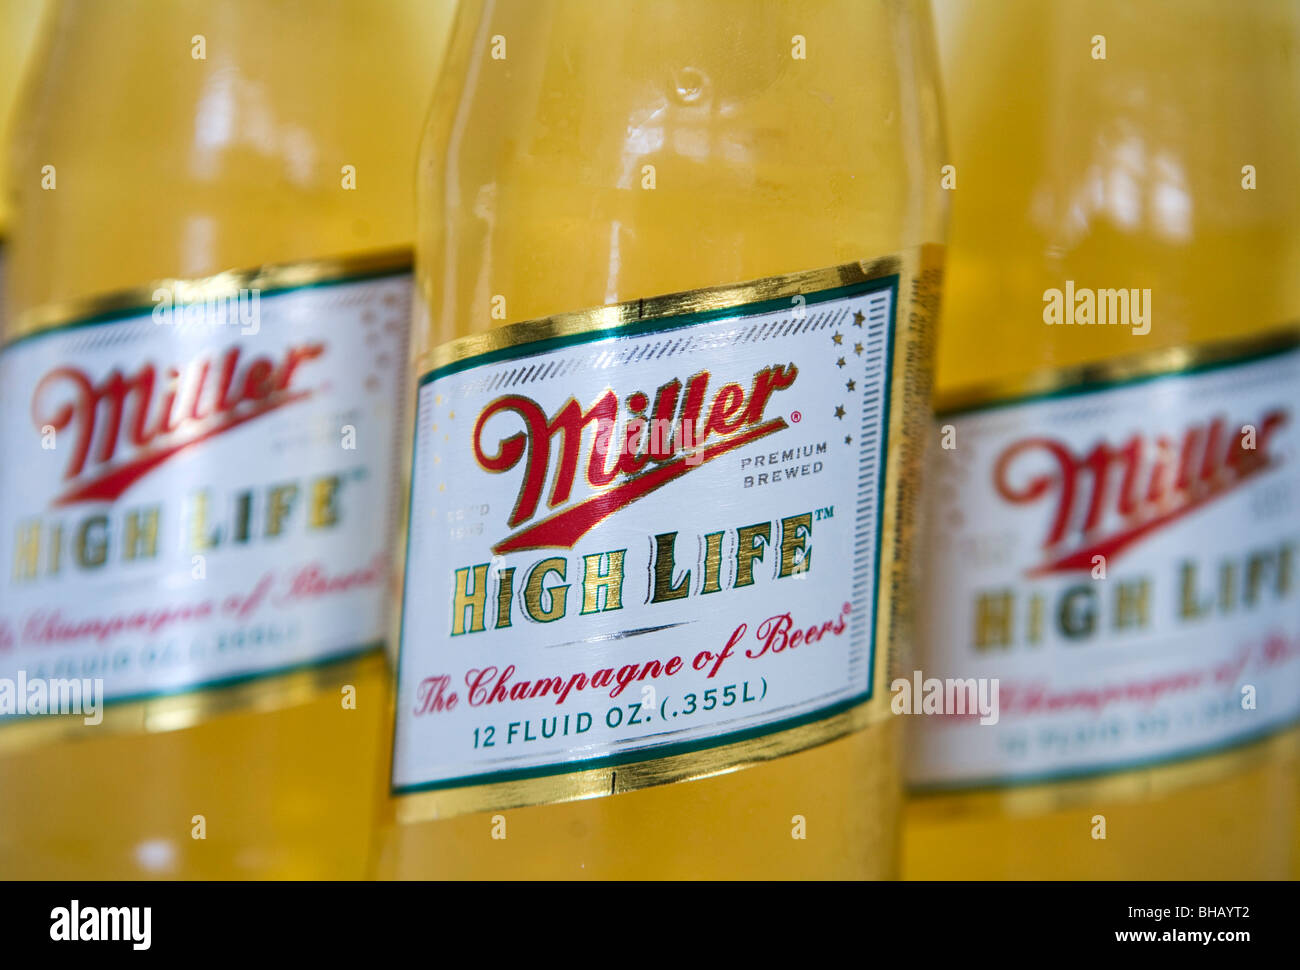 A grouping of Miller High Life Beer Bottles.  - Stock Image